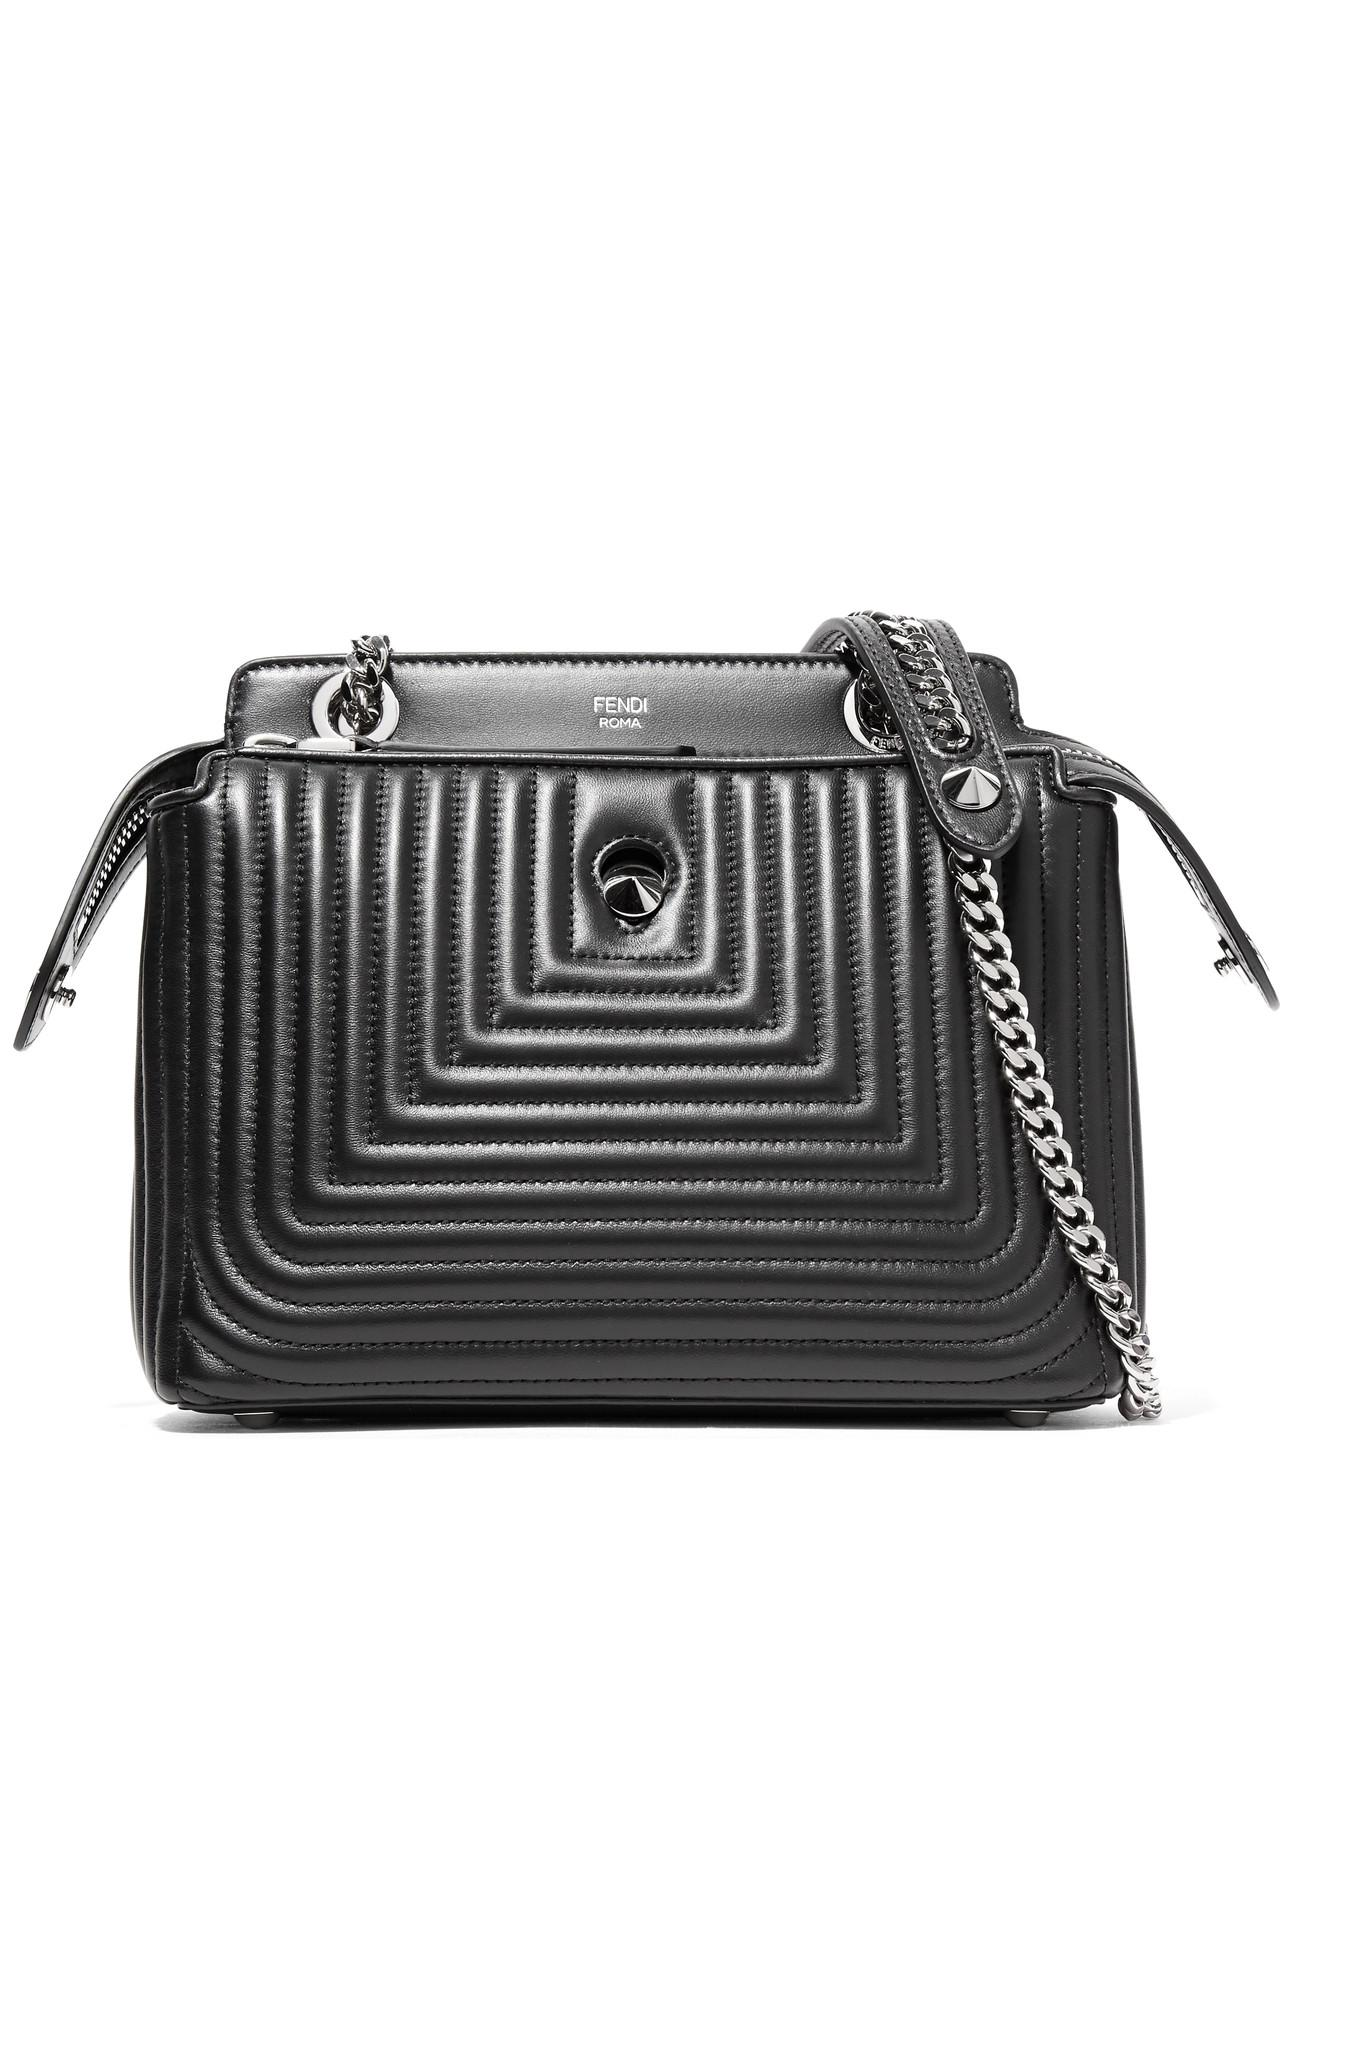 4aaaf08953f7 Lyst - Fendi Dotcom Click Quilted Leather Shoulder Bag in Black